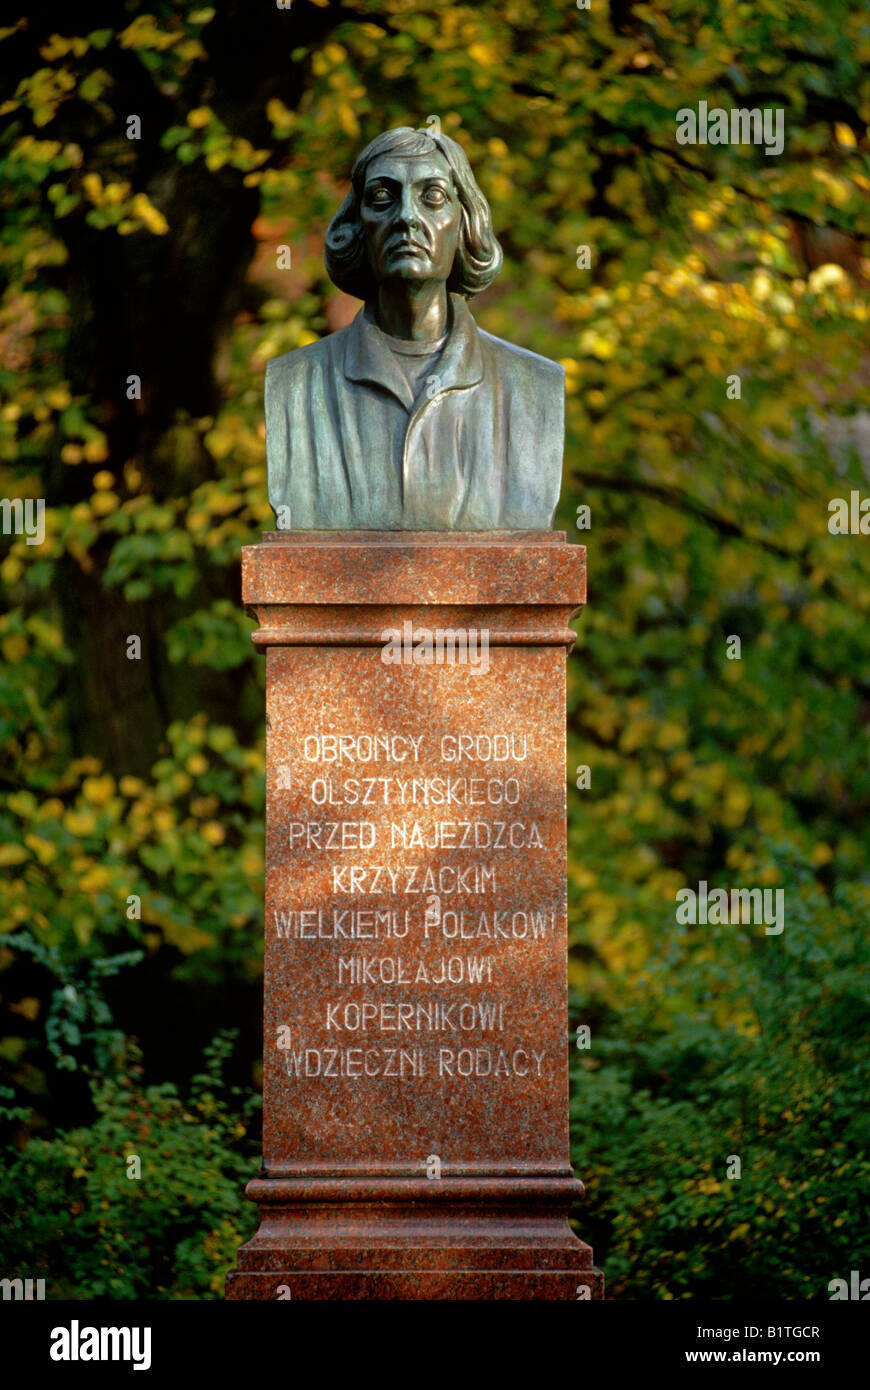 Bust of Nicolaus Copernicus below the former castle of the teutonic order in Olsztyn (Masuria, Poland). - Stock Image